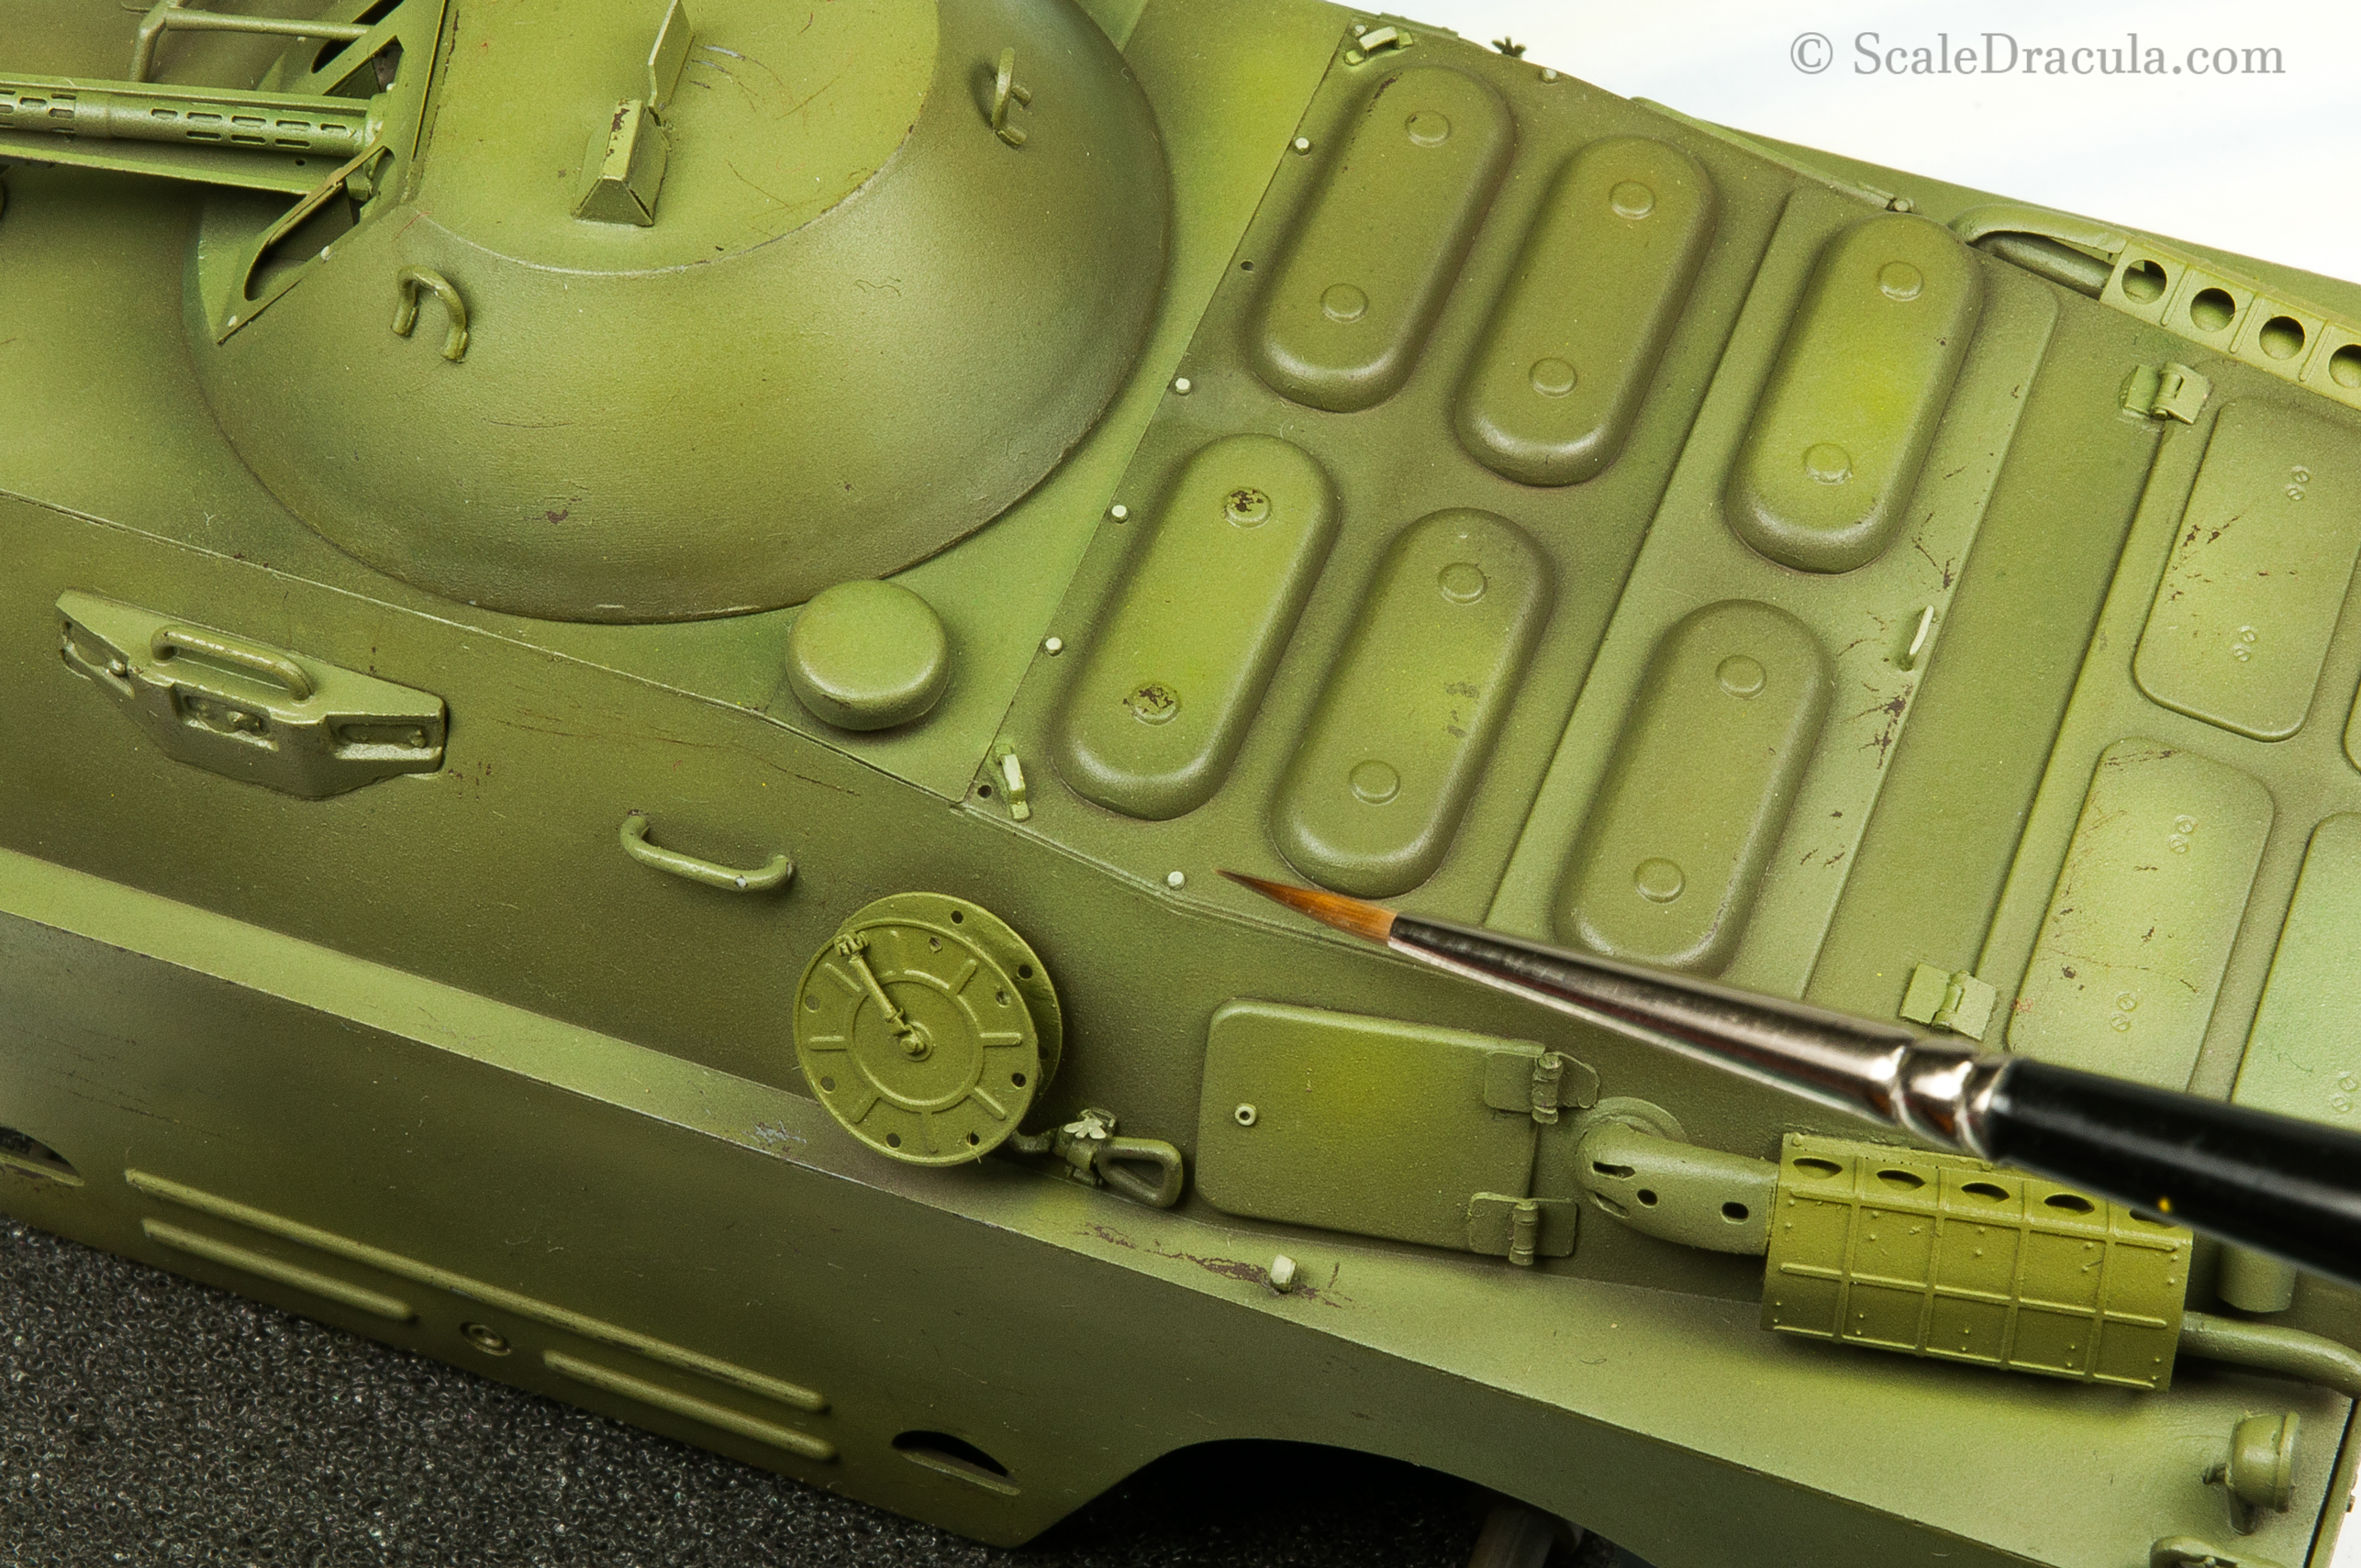 Highlighting details with brush, BRDM-2